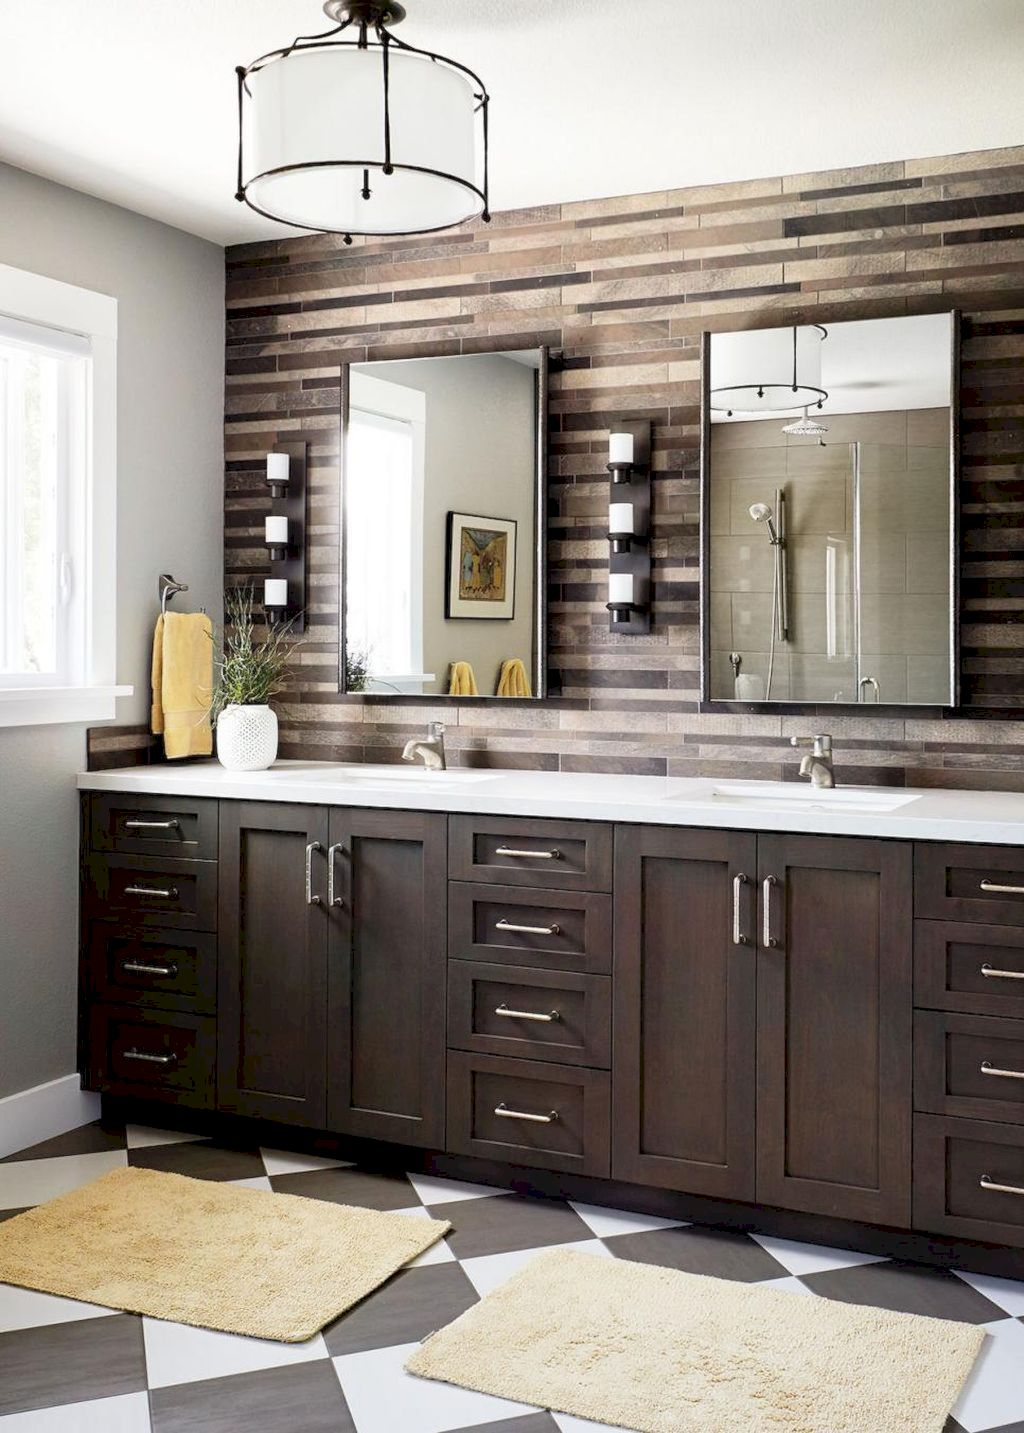 Beautiful bathroom update with eclectic patterned tiles and ethnic rugs very efficient to improve bathroom floor design Image 23